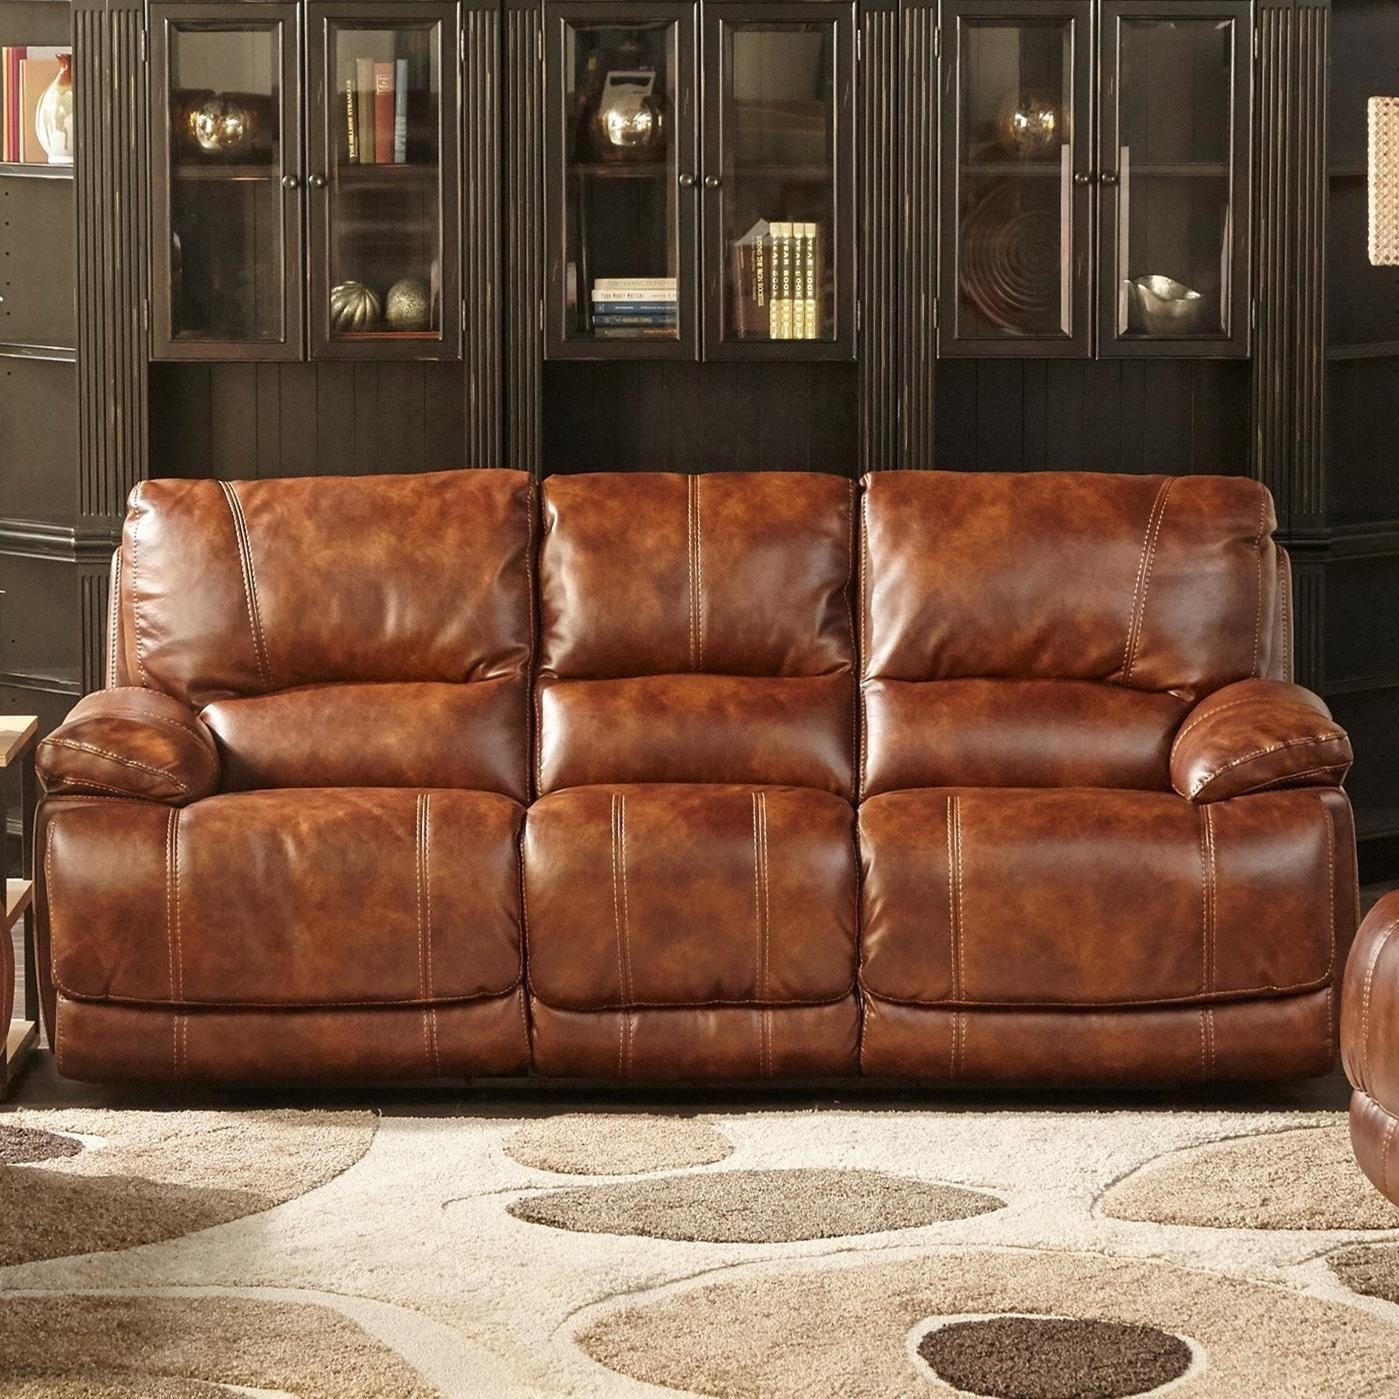 Cheers Sofa 5185M Dual Power Motion Sofa With Power Headrests With Cheers Sofas (Image 6 of 20)